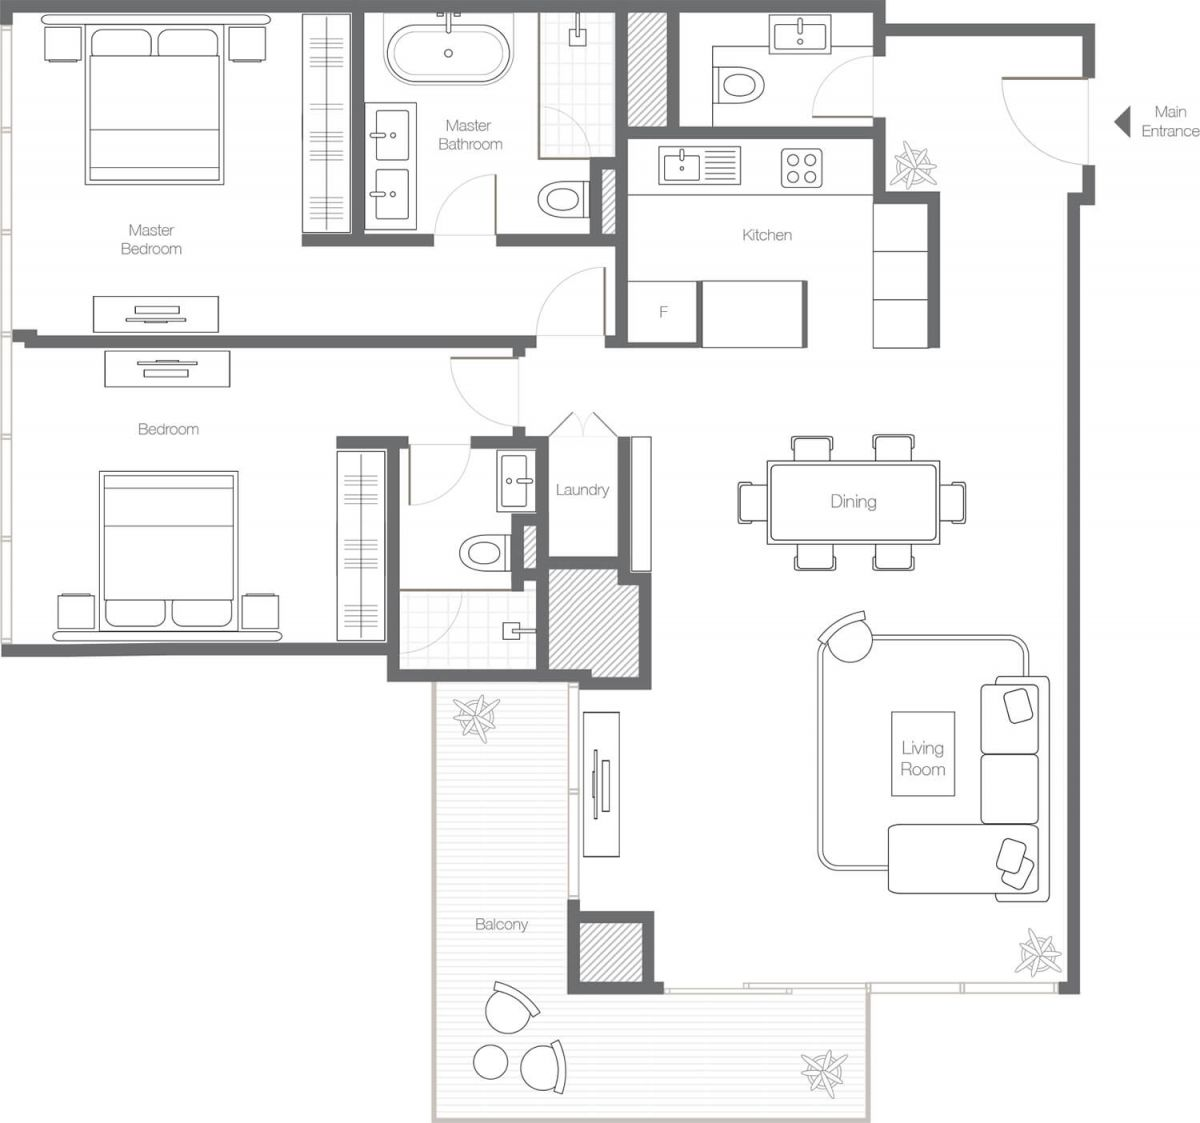 2 Bedroom Apartment - Type 2B.jpg